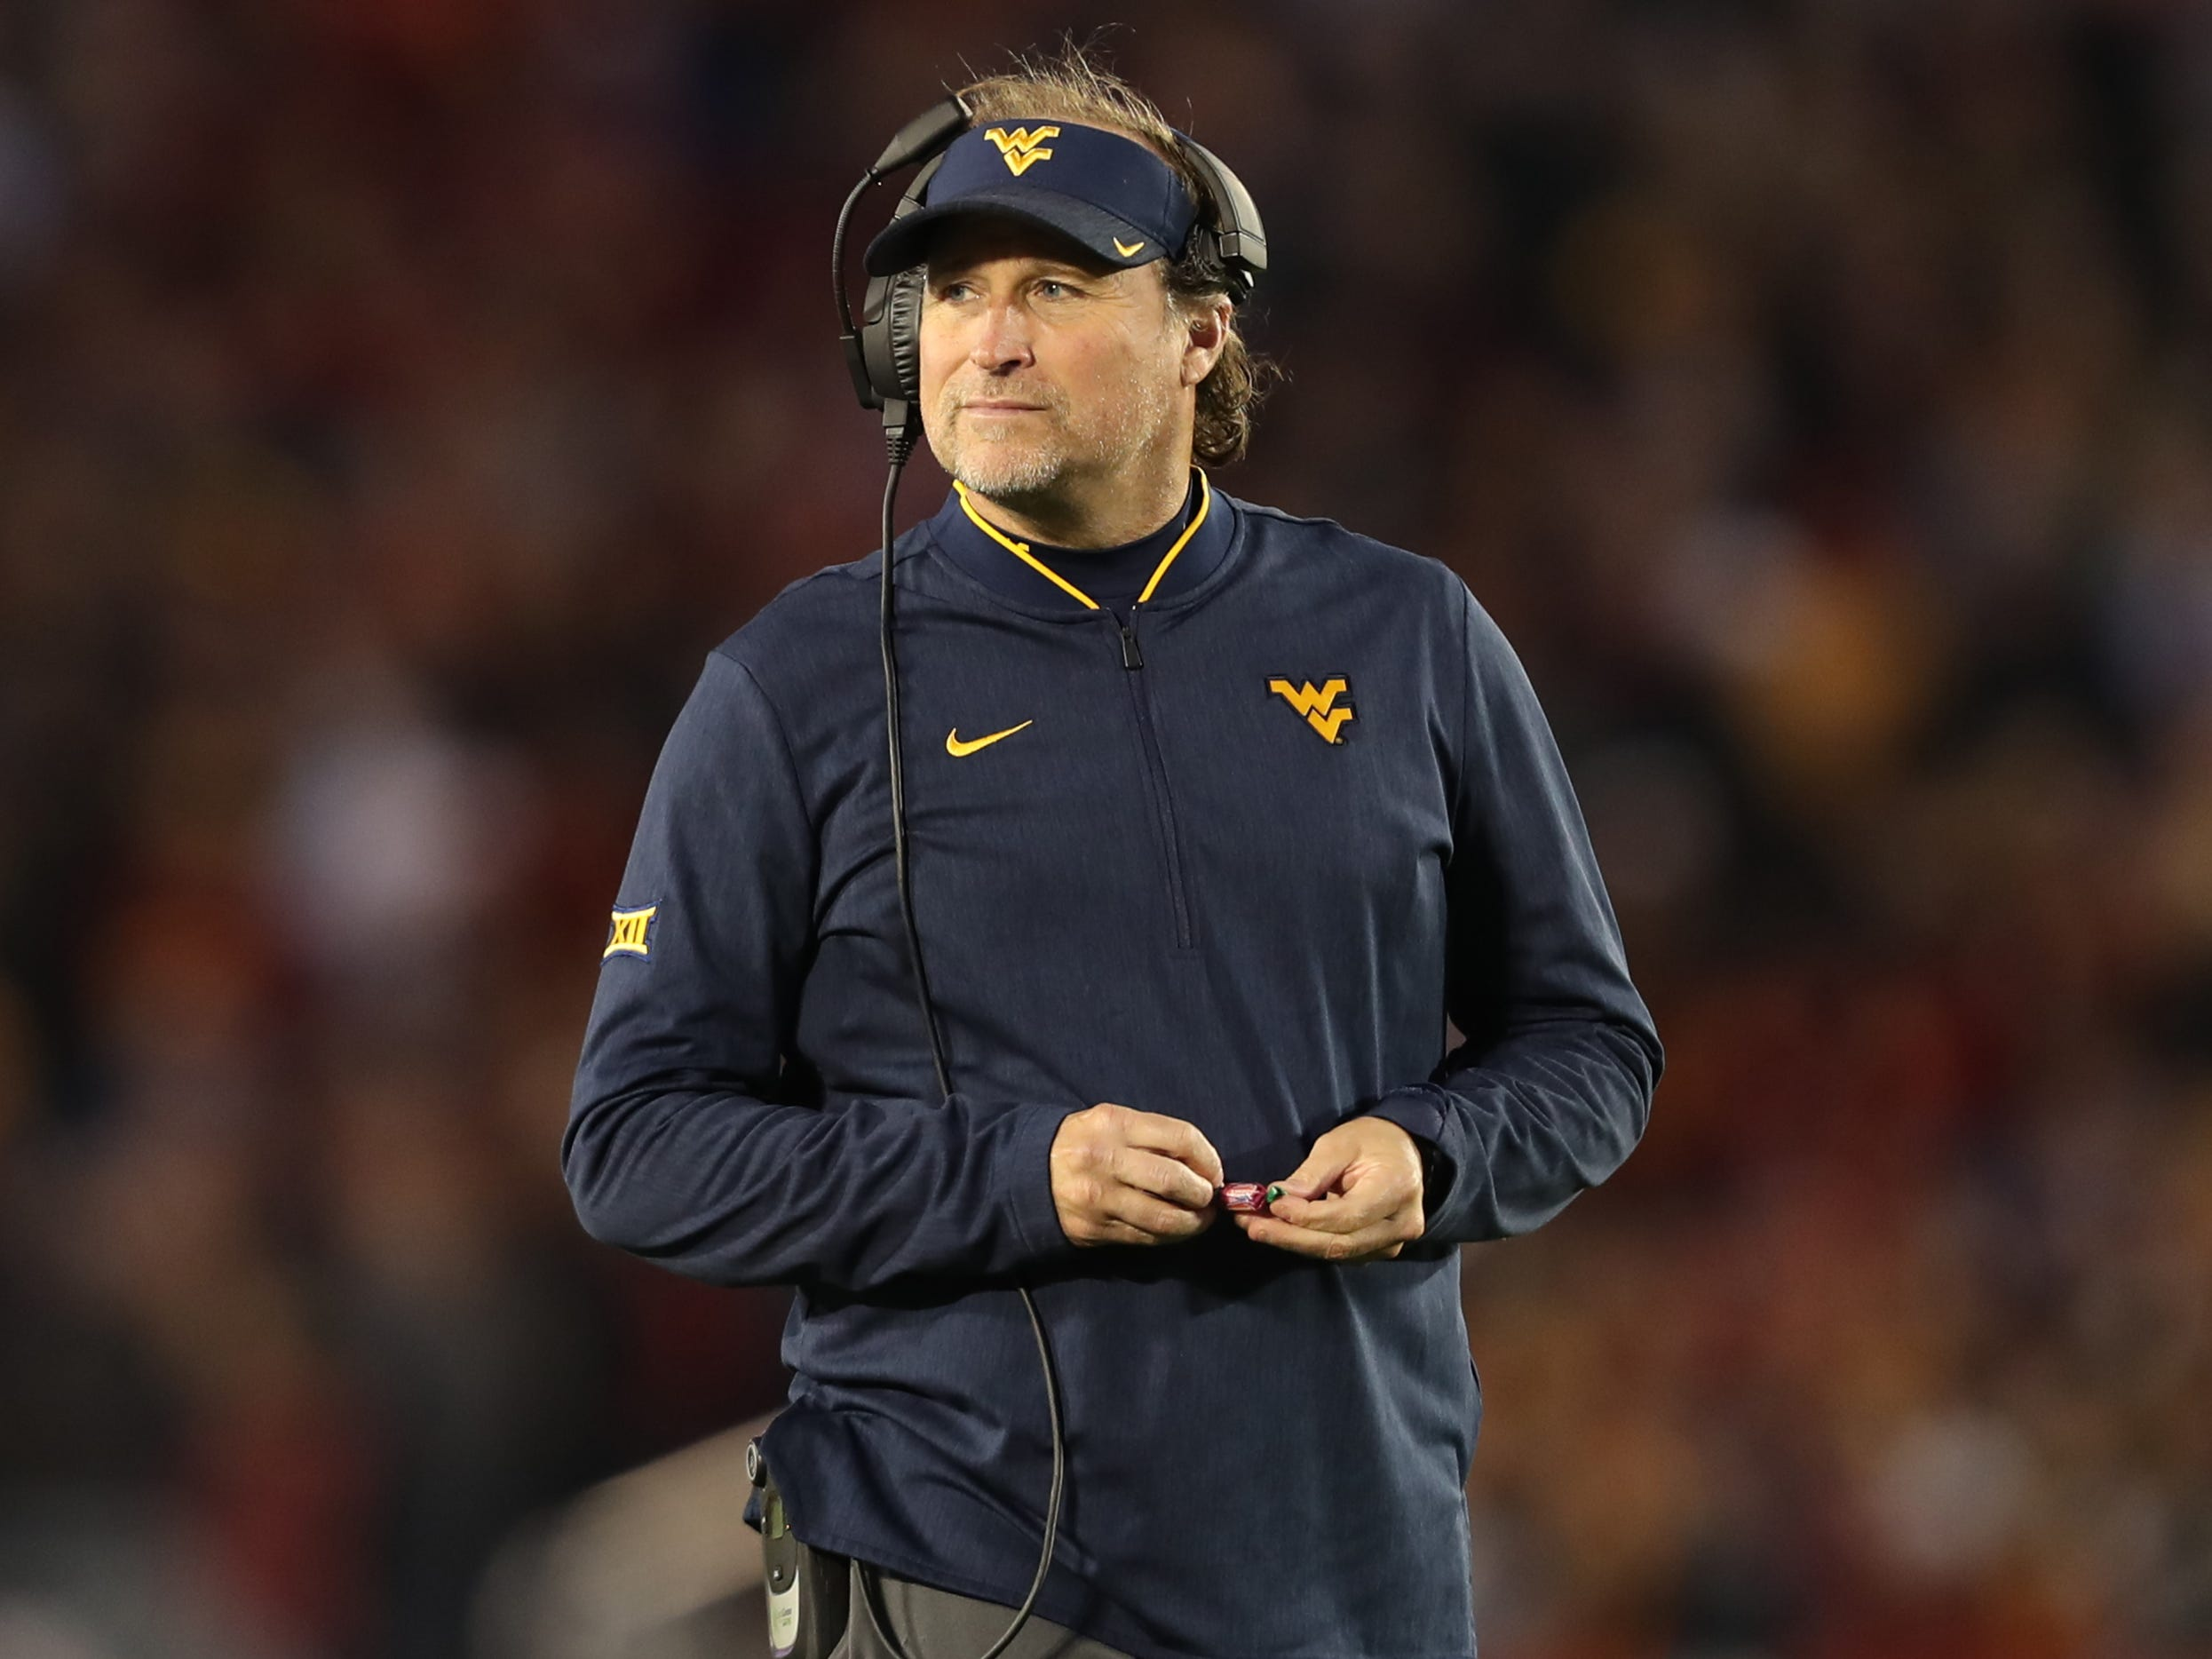 West Virginia Mountaineers head coach Dana Holgorsen watches his team against the Iowa State Cyclones at Jack Trice Stadium.